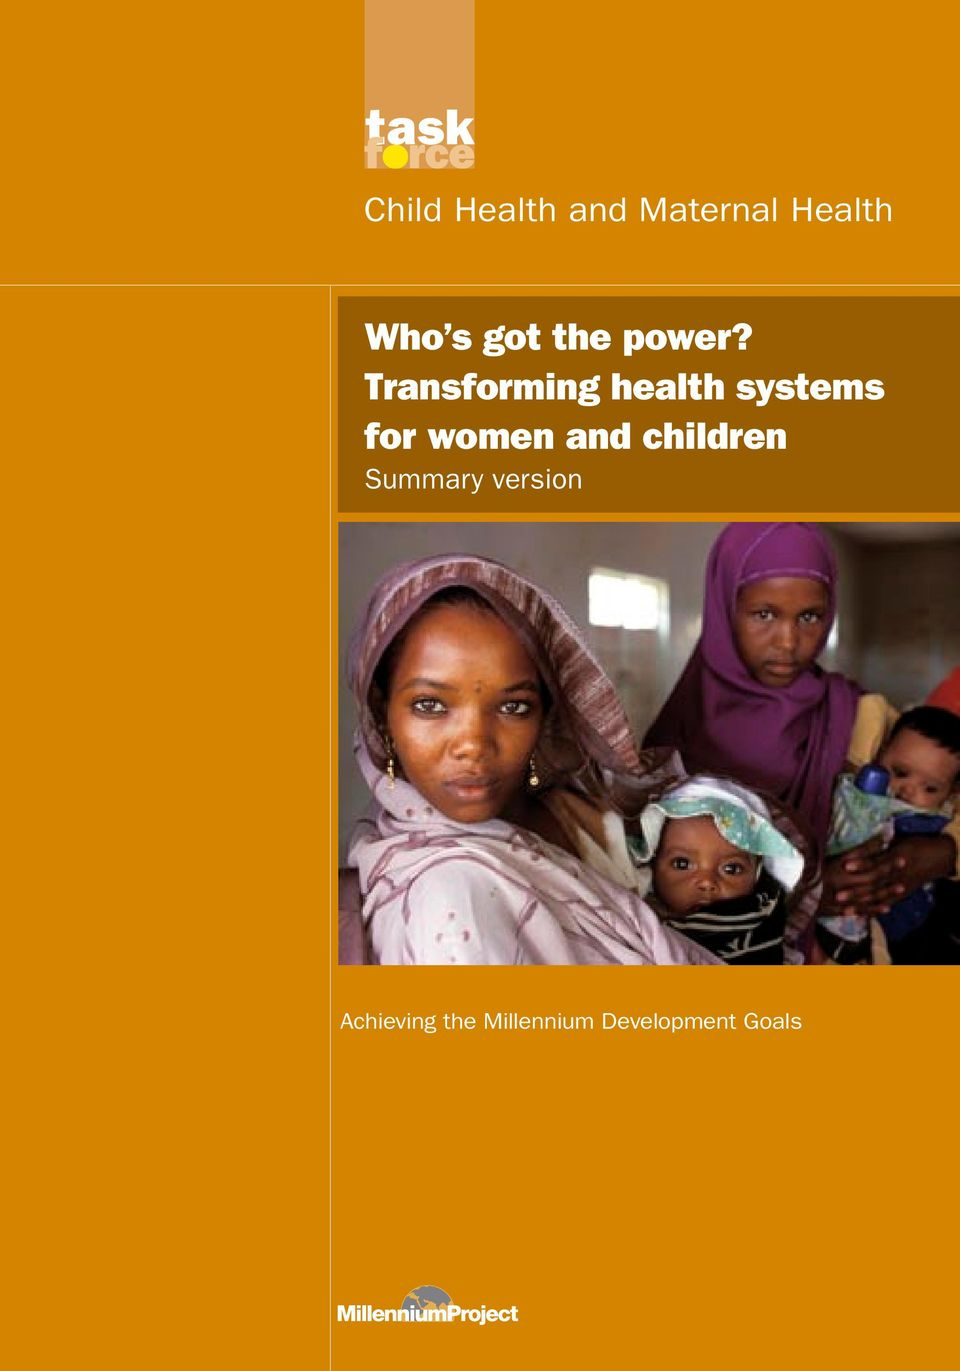 Transforming health systems for women